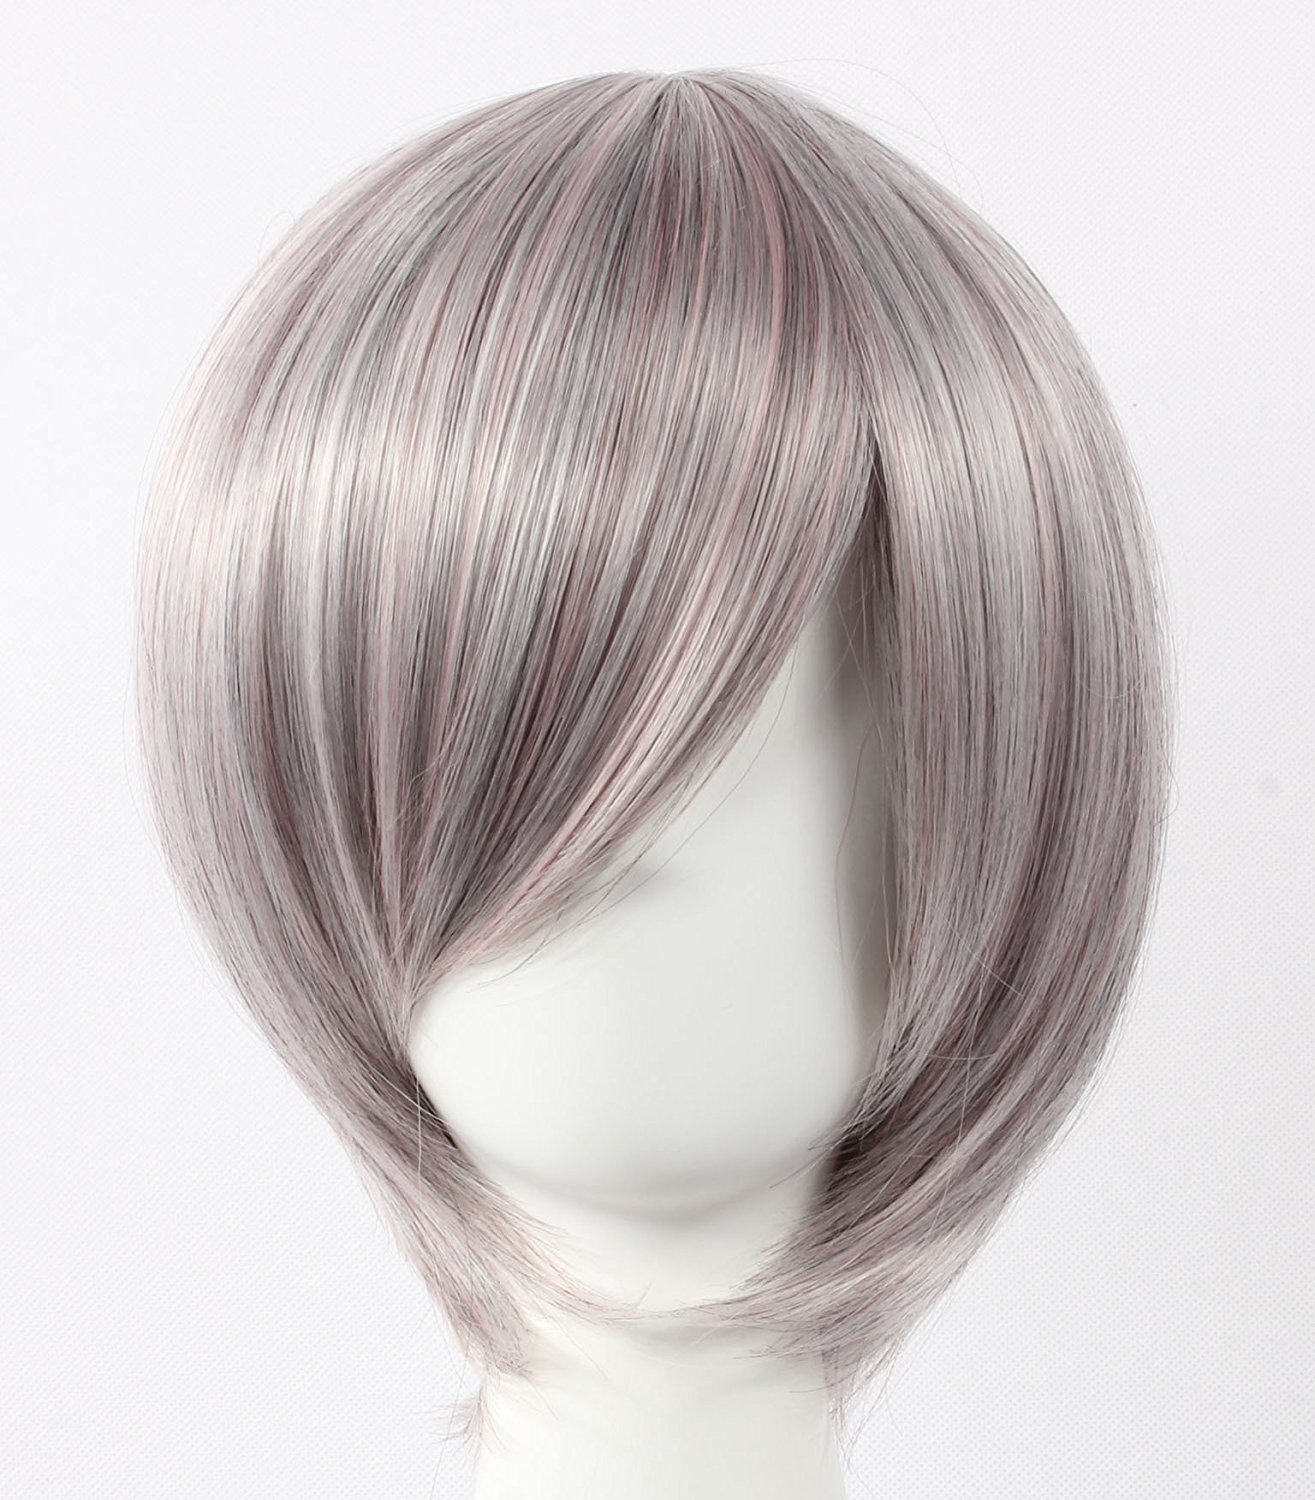 Coolsky Cosplay Wig Light Grey Wig Short Light Grey Straight Wig axis power hetalia I...